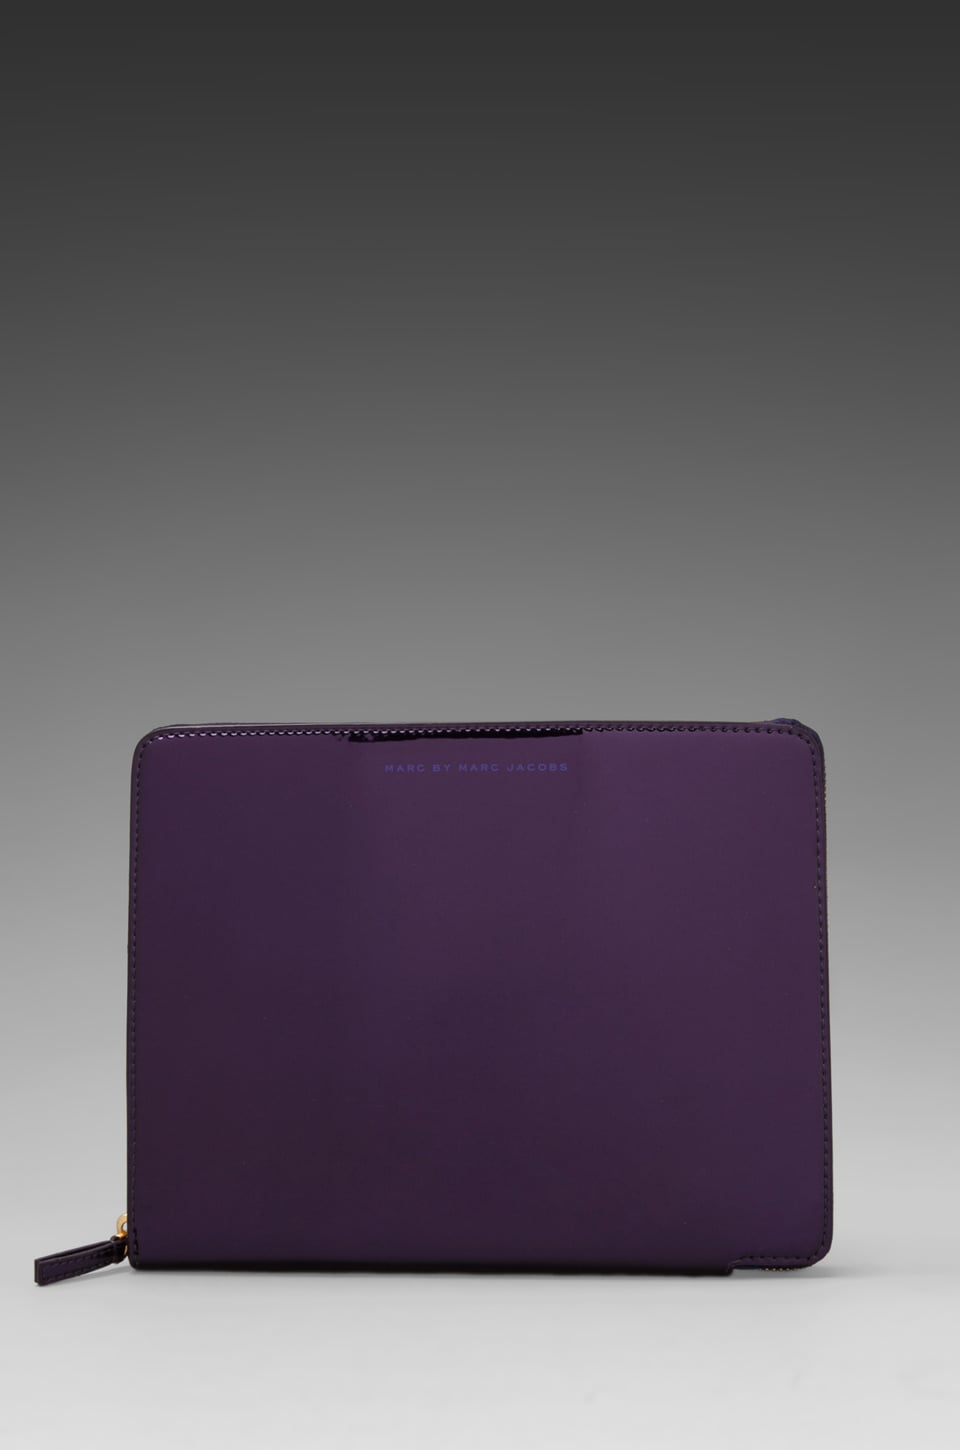 Marc by Marc Jacobs Techno Tablet Book in Purple Holographic